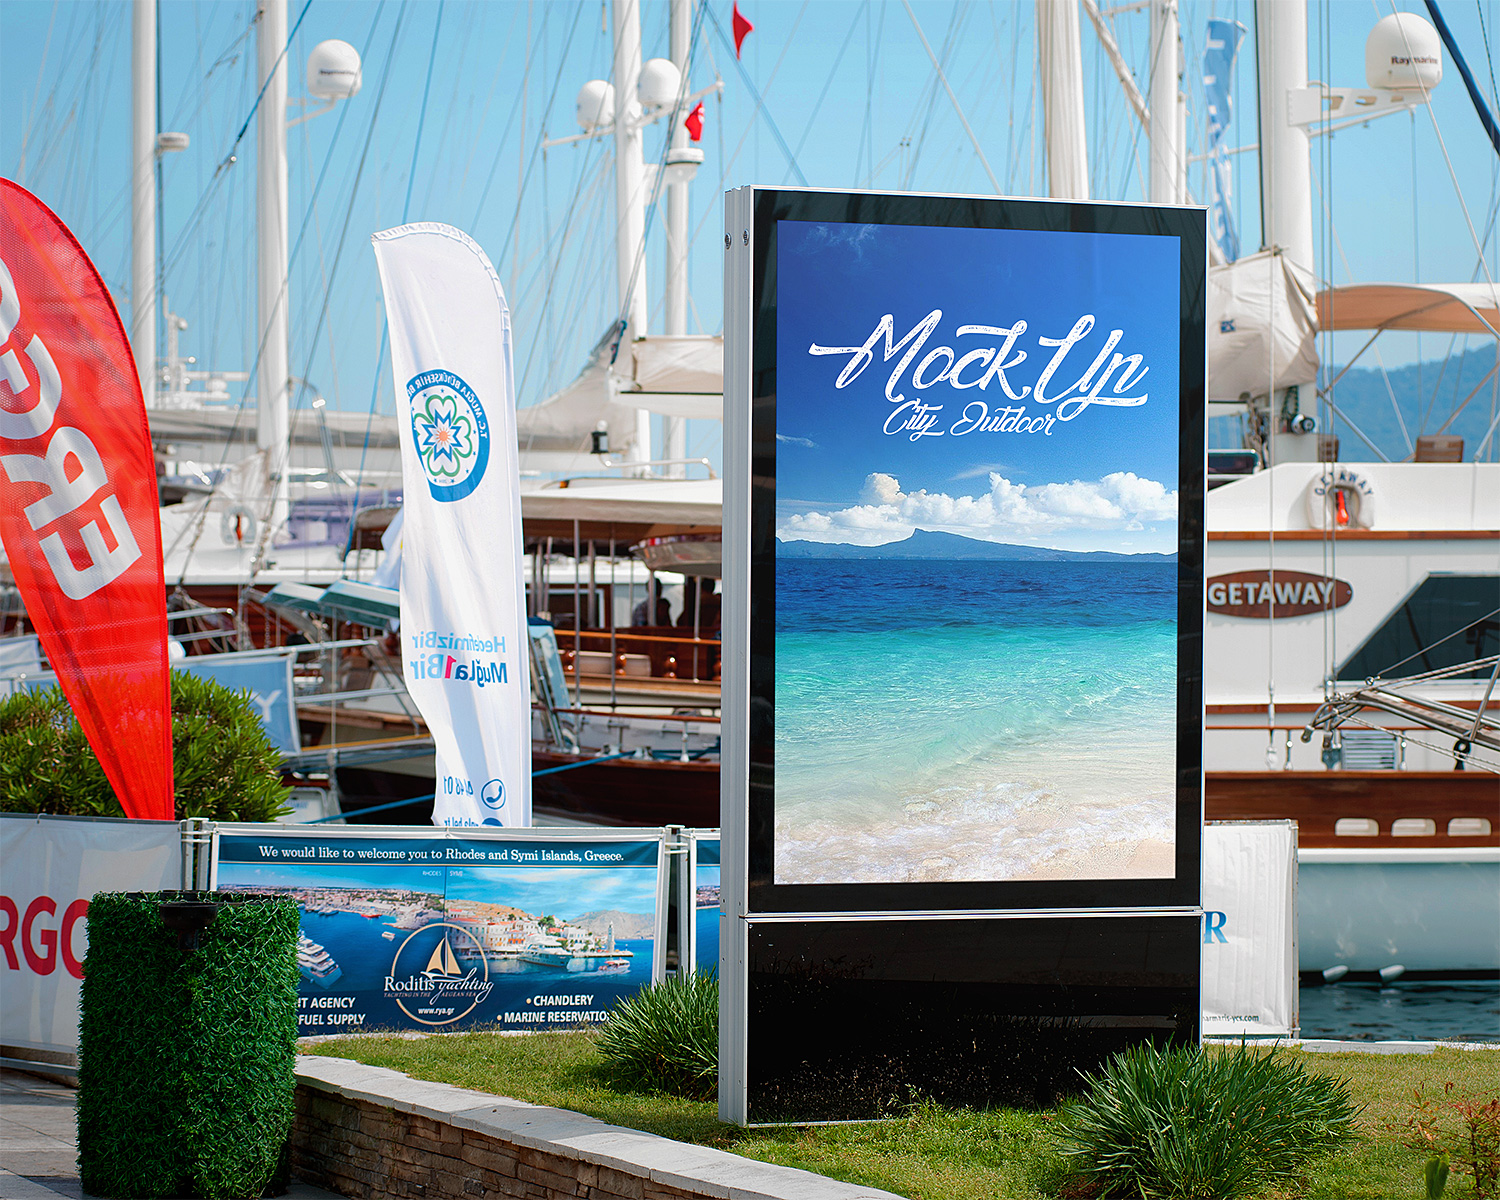 City-Light-Poster-Outdoor-Advertising-Mockups-01